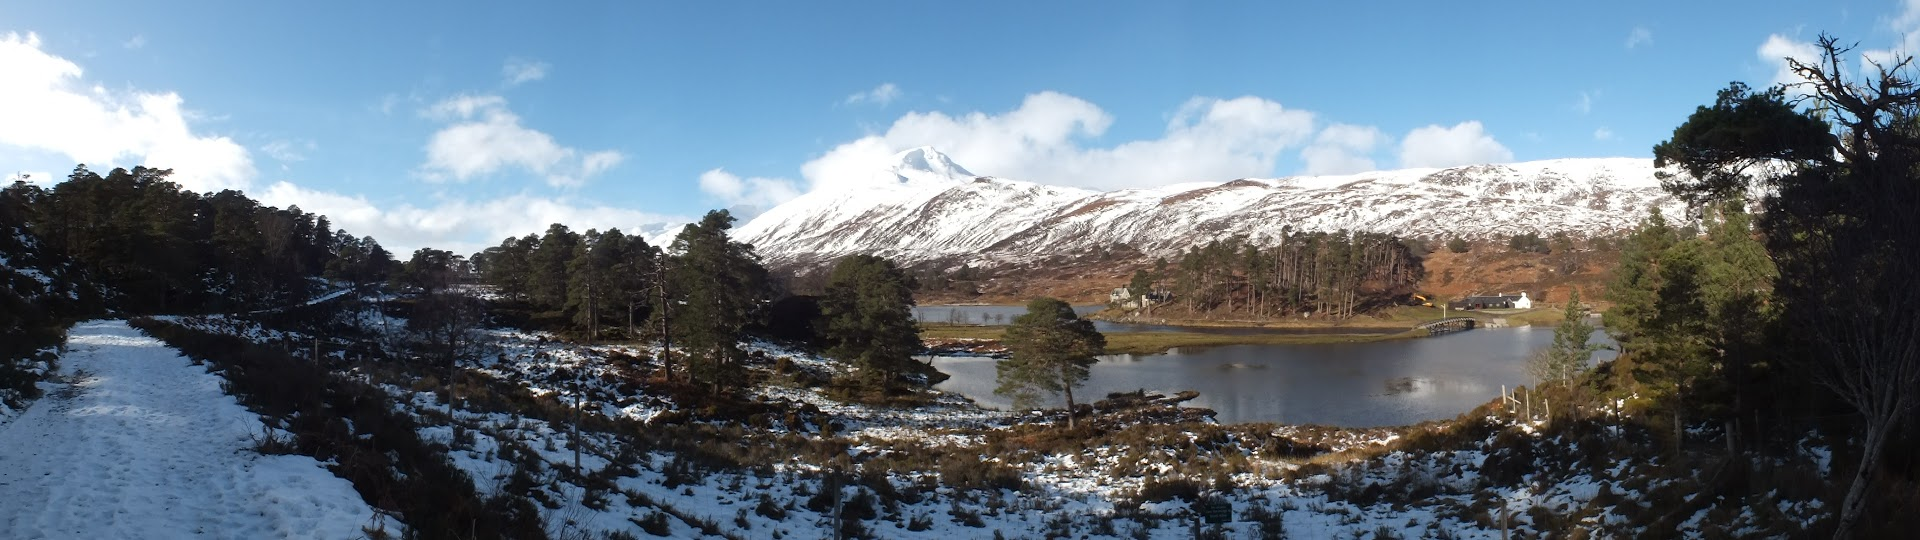 Panorama of a snow-covered woodland trail with a loch and mountains in the background